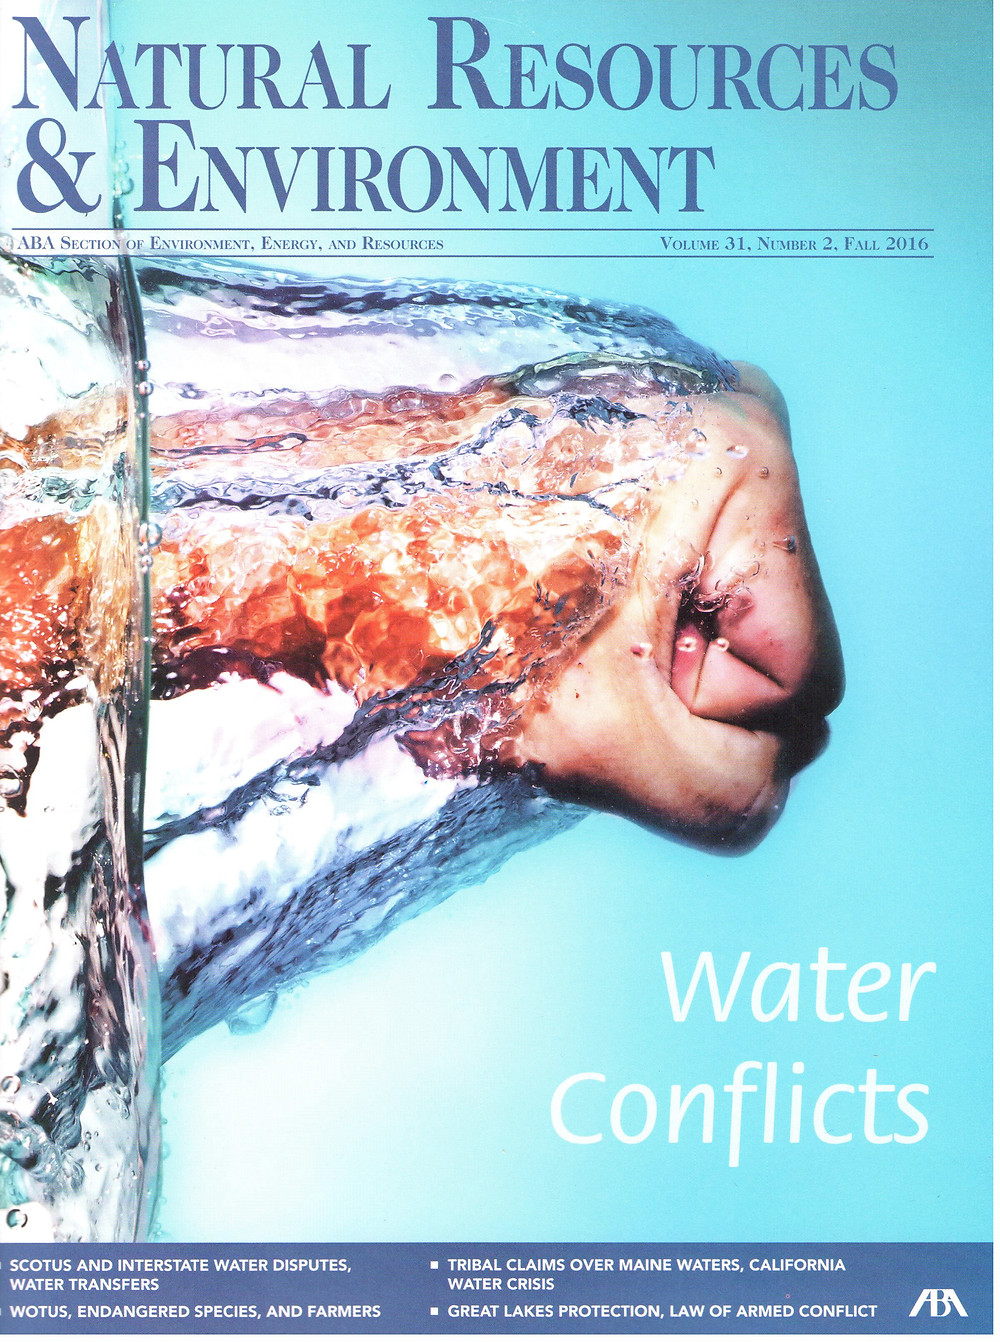 ABA's Natural Resources & Environment Magazine Cover